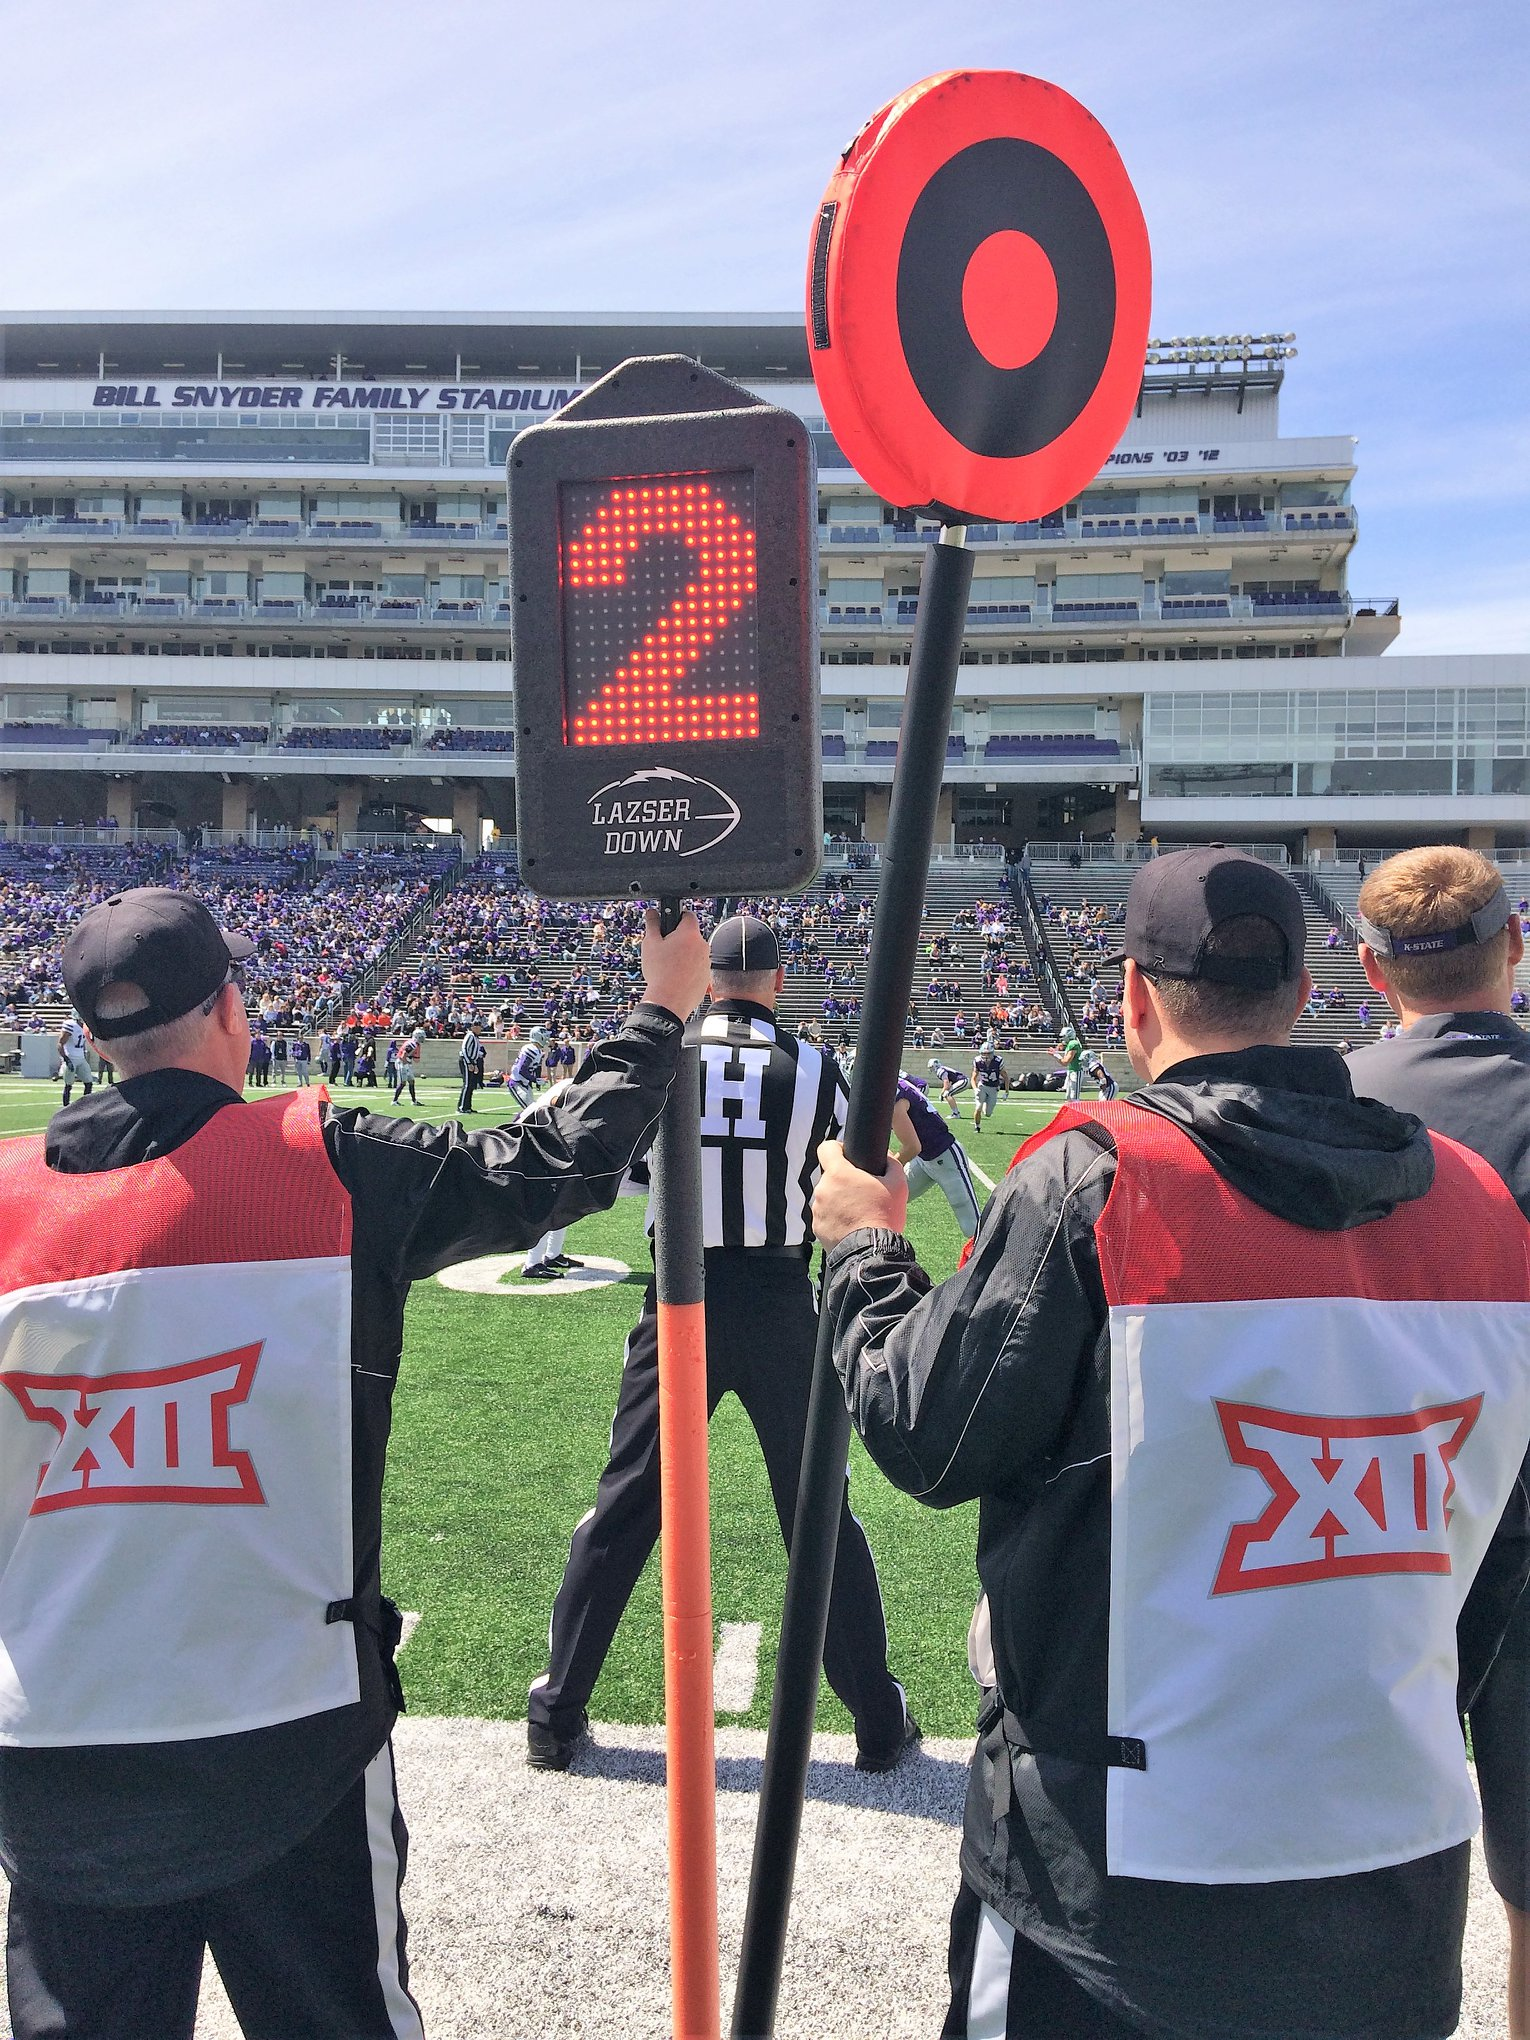 Lazser Down, sidelines, distance marker, down maker, laser down, football, kansas state, kansas state university, kansas state football, kansas state univeristy football, ksu, ksu football, wildcat, wildcats, wildcat football, wildcats football, emaw